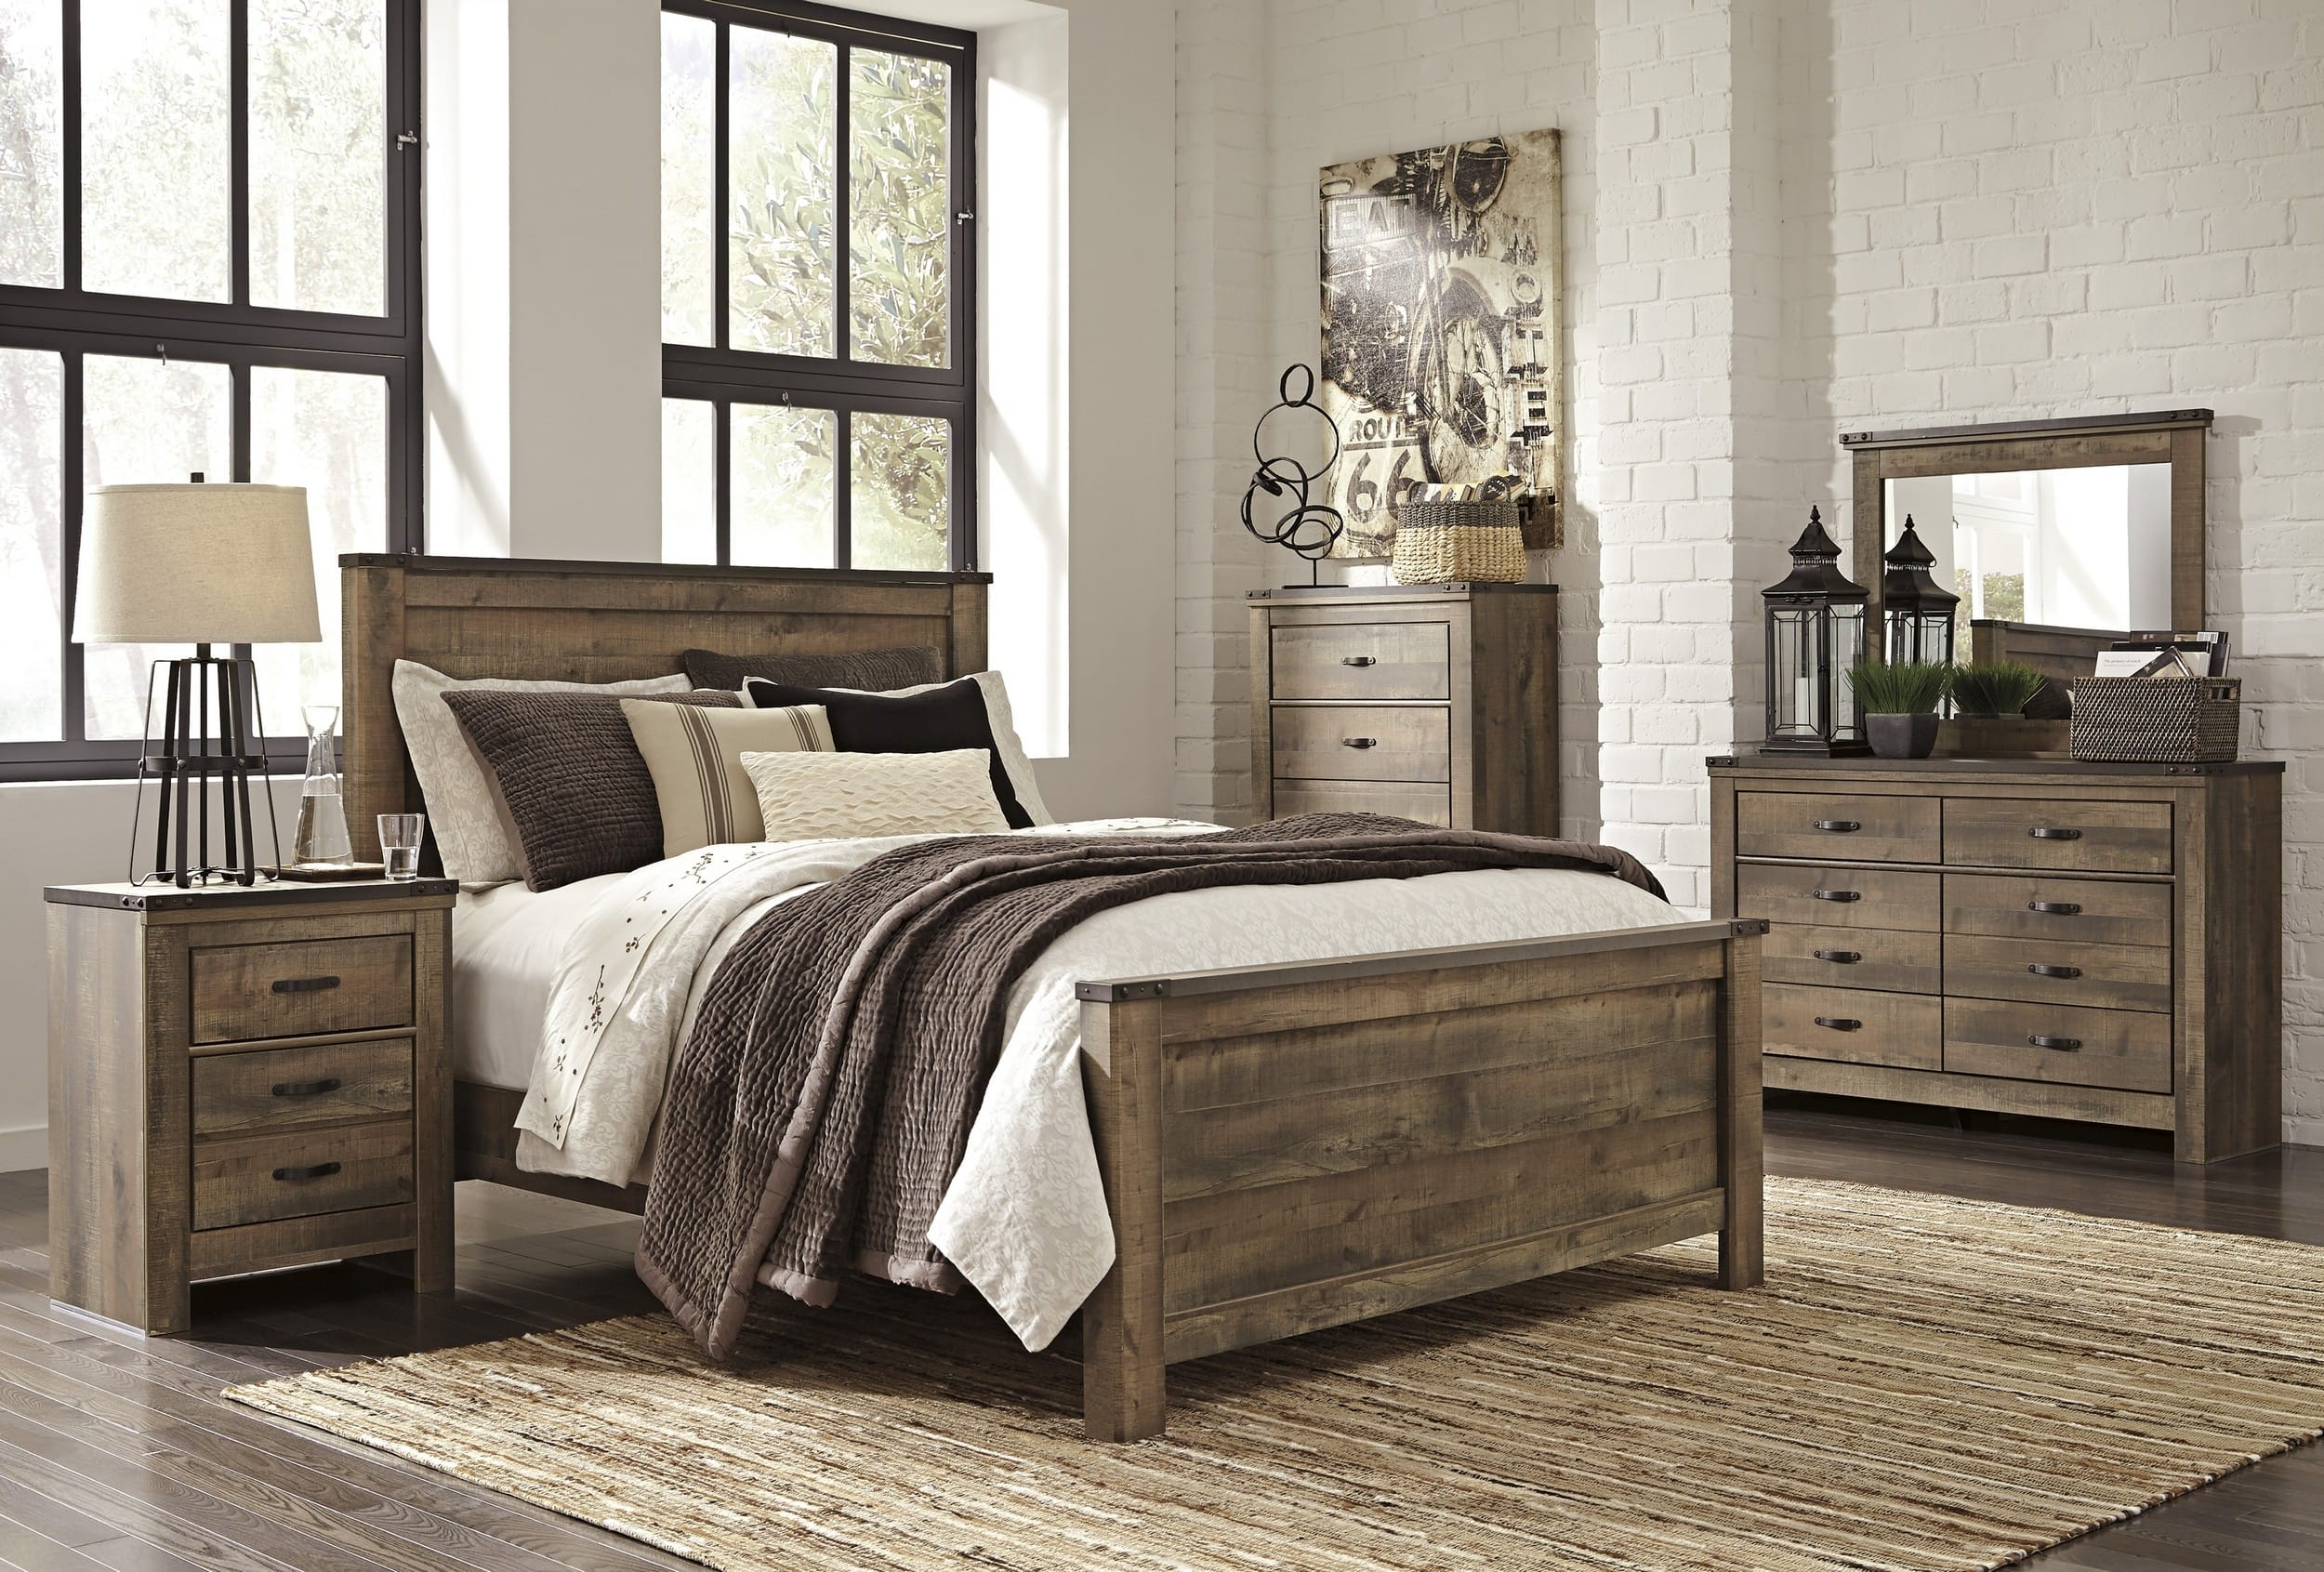 Signature Design by Ashley Trinell Brown 4 Piece Queen Bedroom Set &  Reviews - Goedekers.com